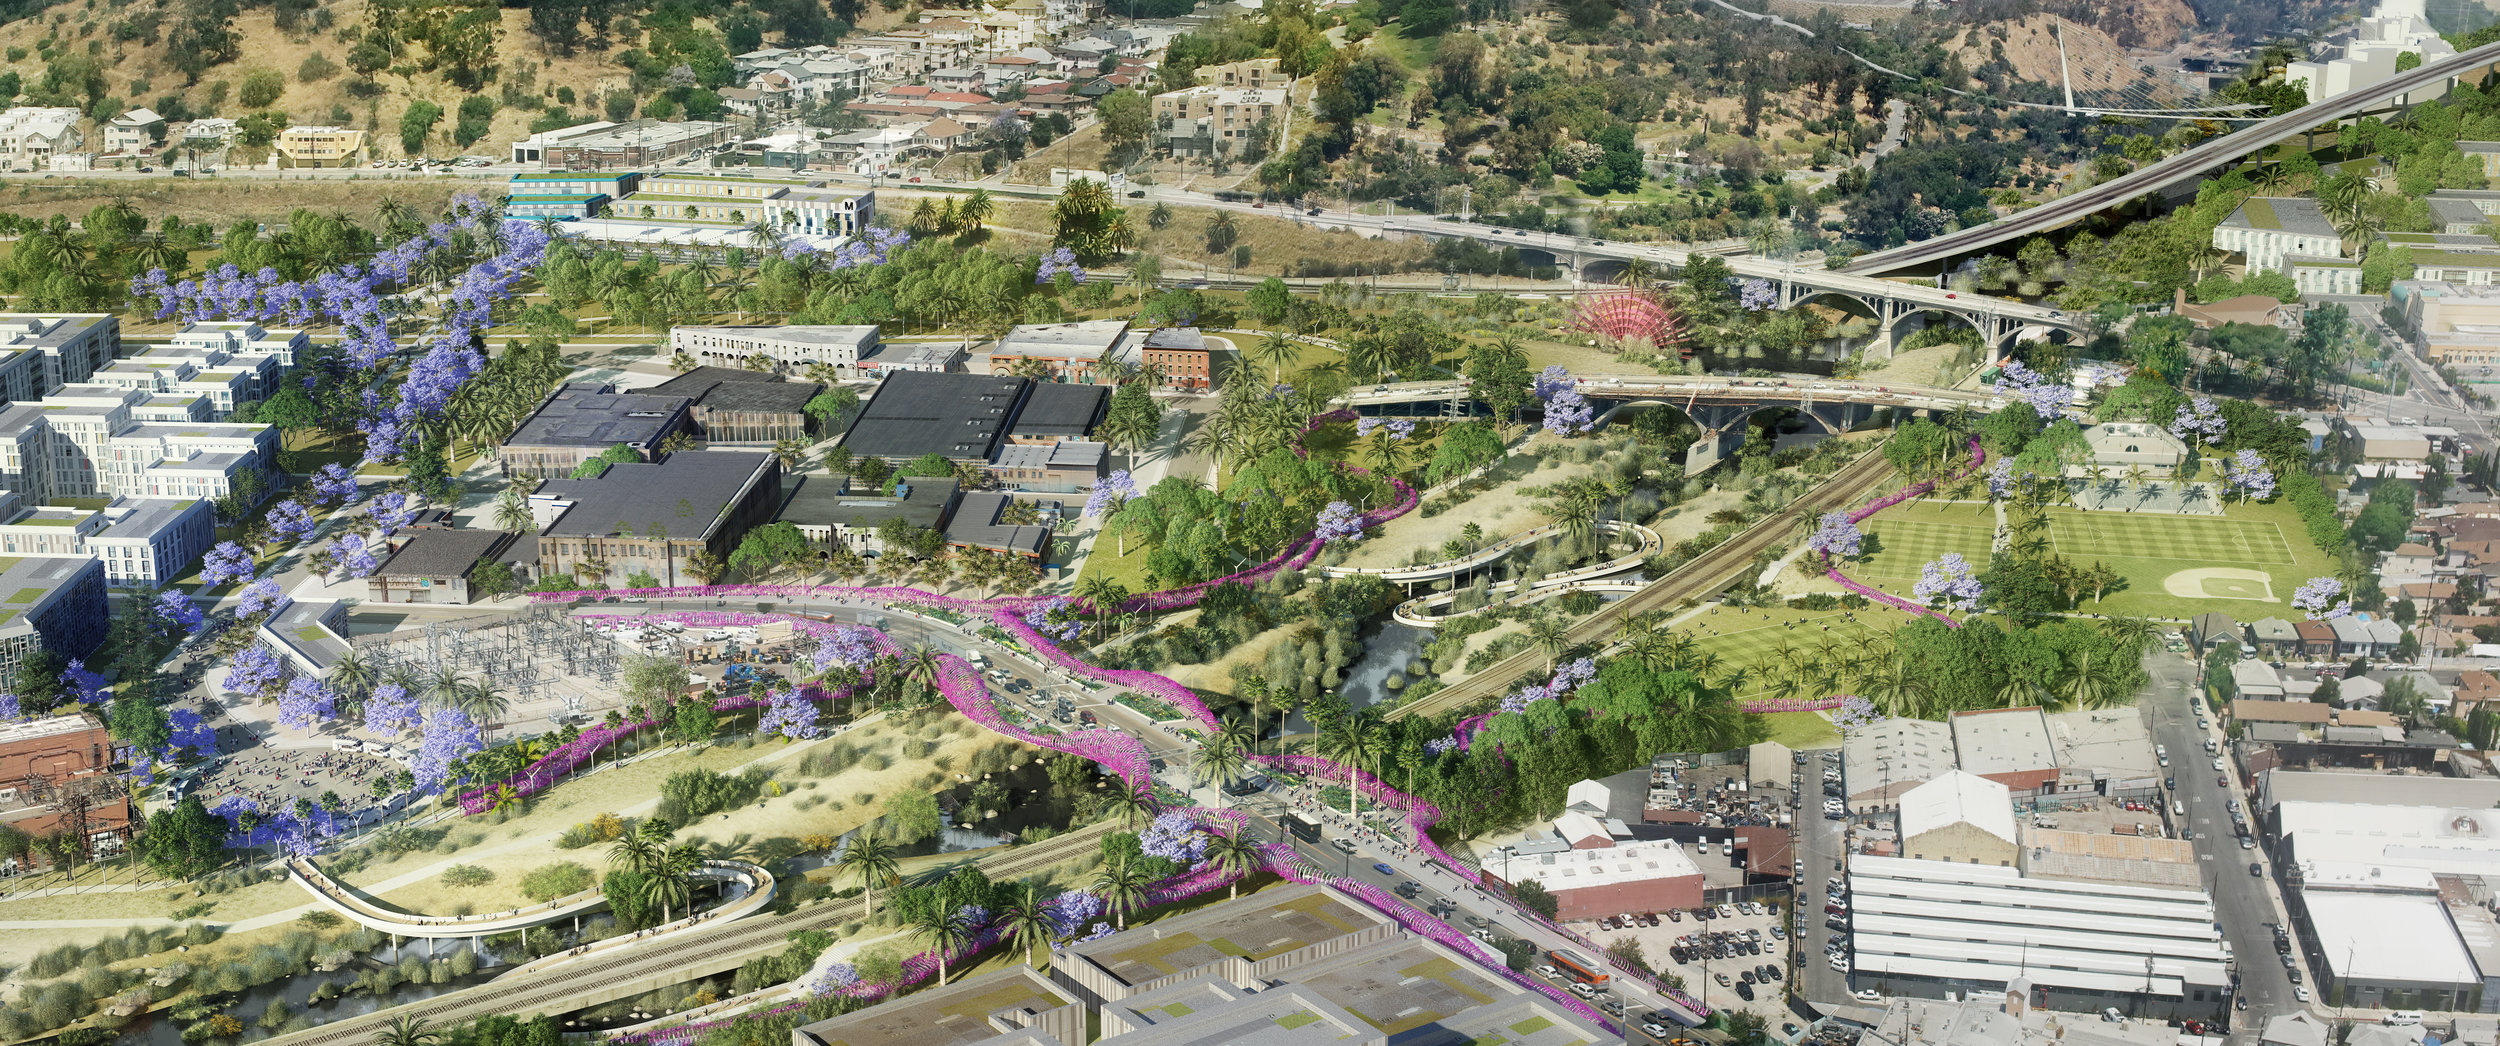 """Citing the roughly 8 million square feet of entitled development area surrounding the river and developable parcels, she said, """"Put those together and you have incredible opportunities to locate much needed housing and jobs in an area where it's welcomed and has minimal impacts on existing communities."""""""